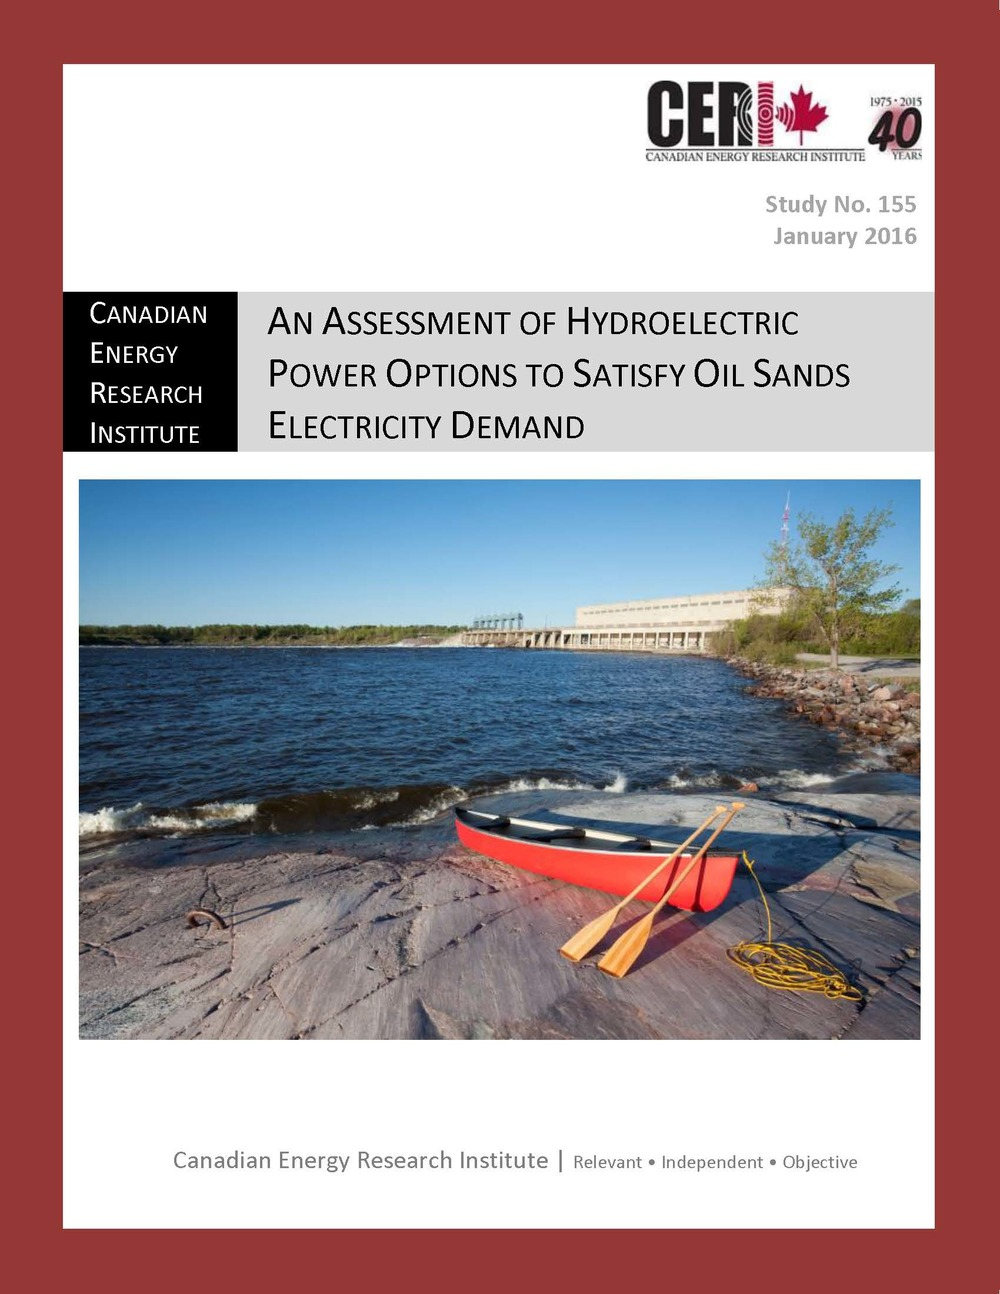 An Assessment of Hydroelectric Power Options to Satisfy Oil Sands Electricity Demand